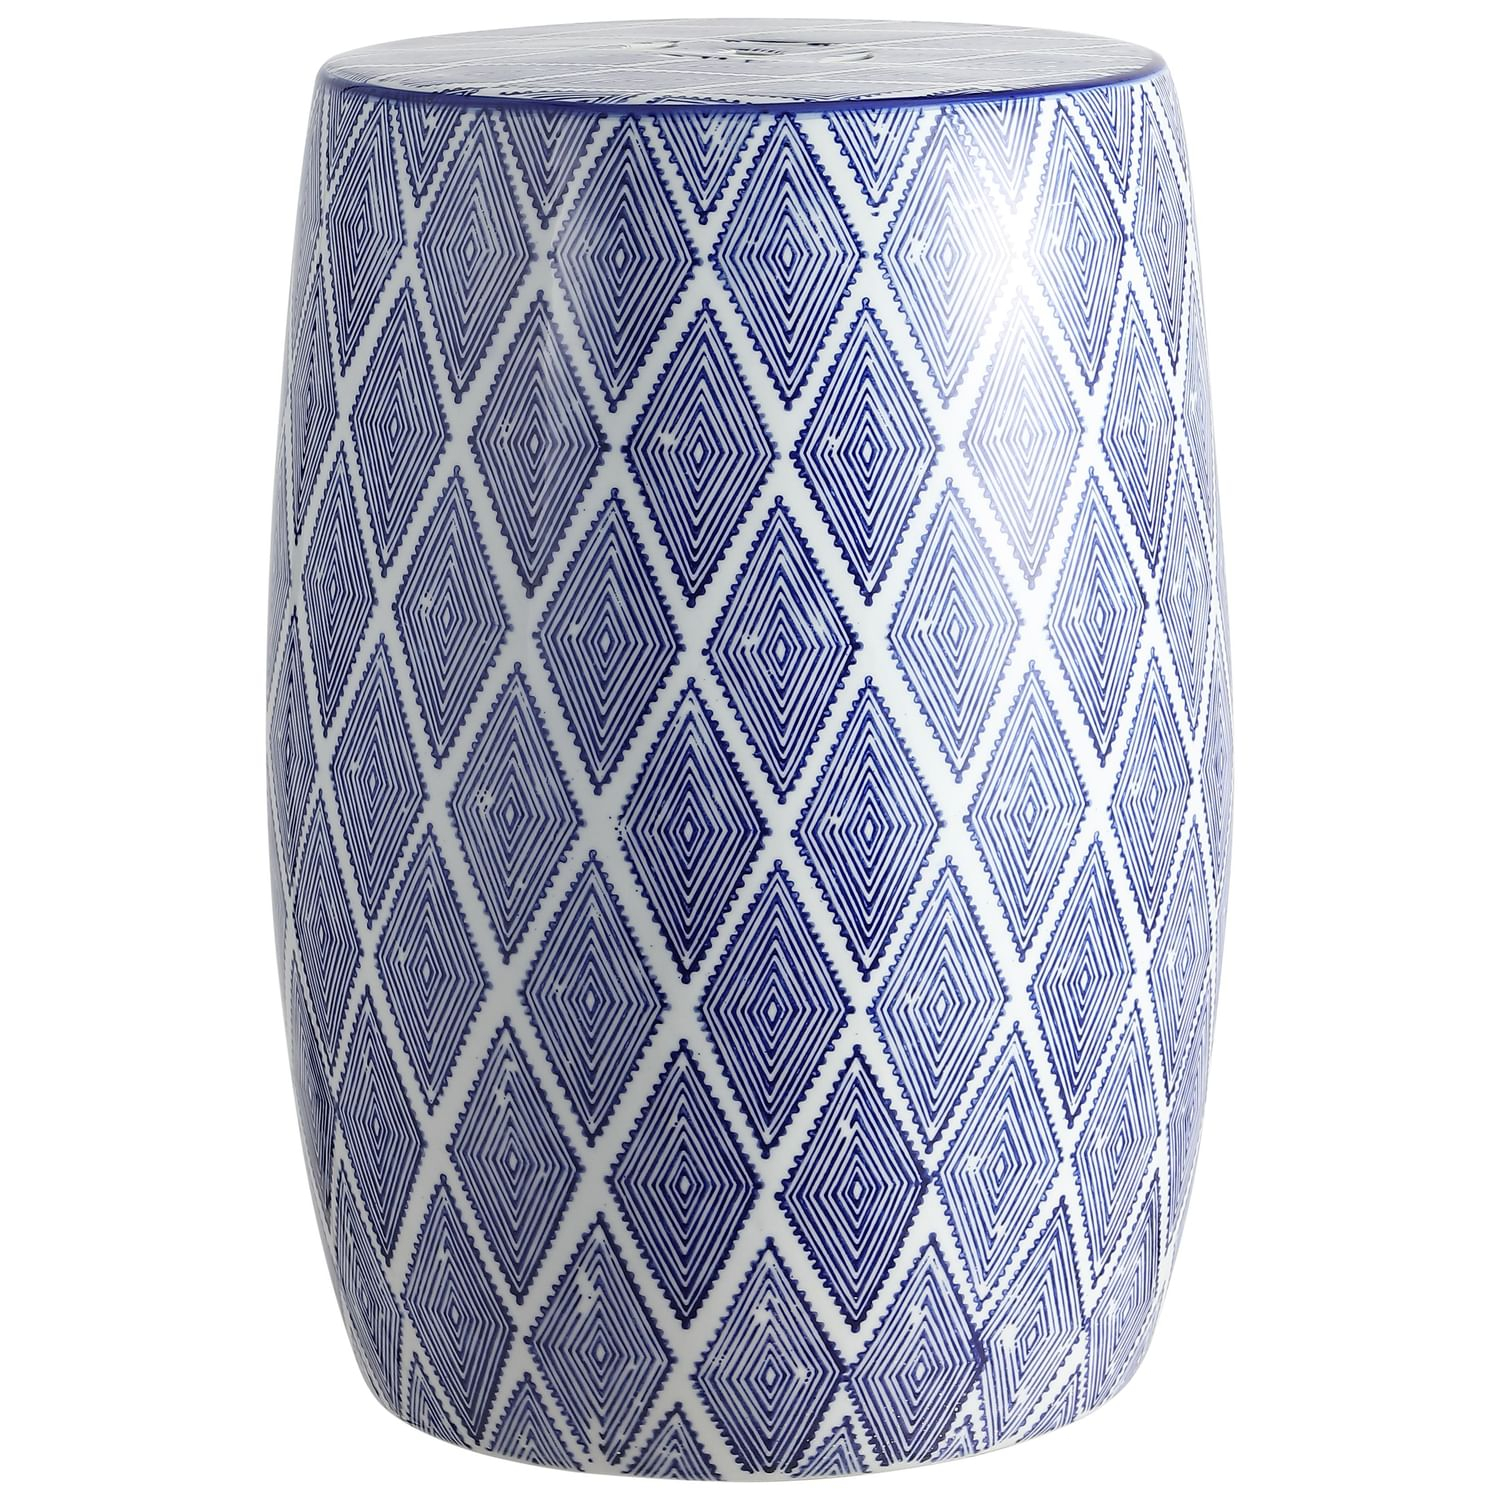 "Moroccan Diamonds 18"" Ceramic Drum Garden Stool, Blue/White Within Canarsie Ceramic Garden Stools (View 24 of 25)"